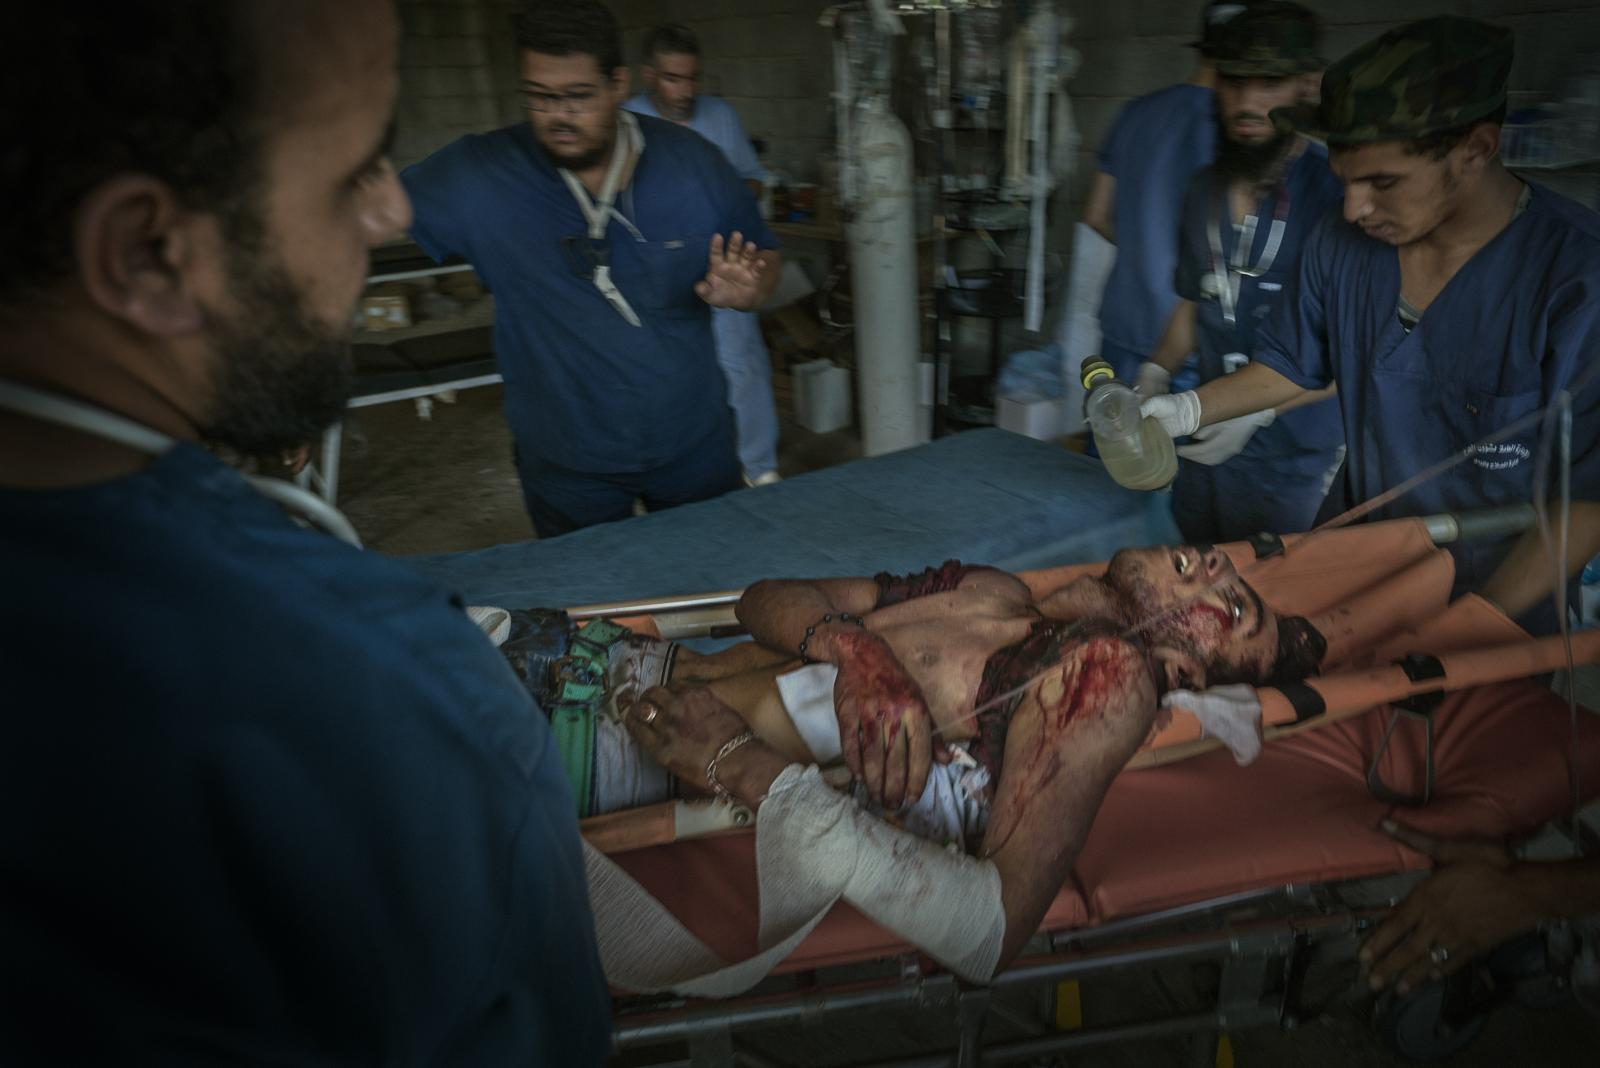 A soldier of the Government of National Accord ( GNA) at the time of his death caused by the explosion of a DOGMA (ISIS suicide car bomb) in a field hospital during the battle of Sirte (Libya, 2016)